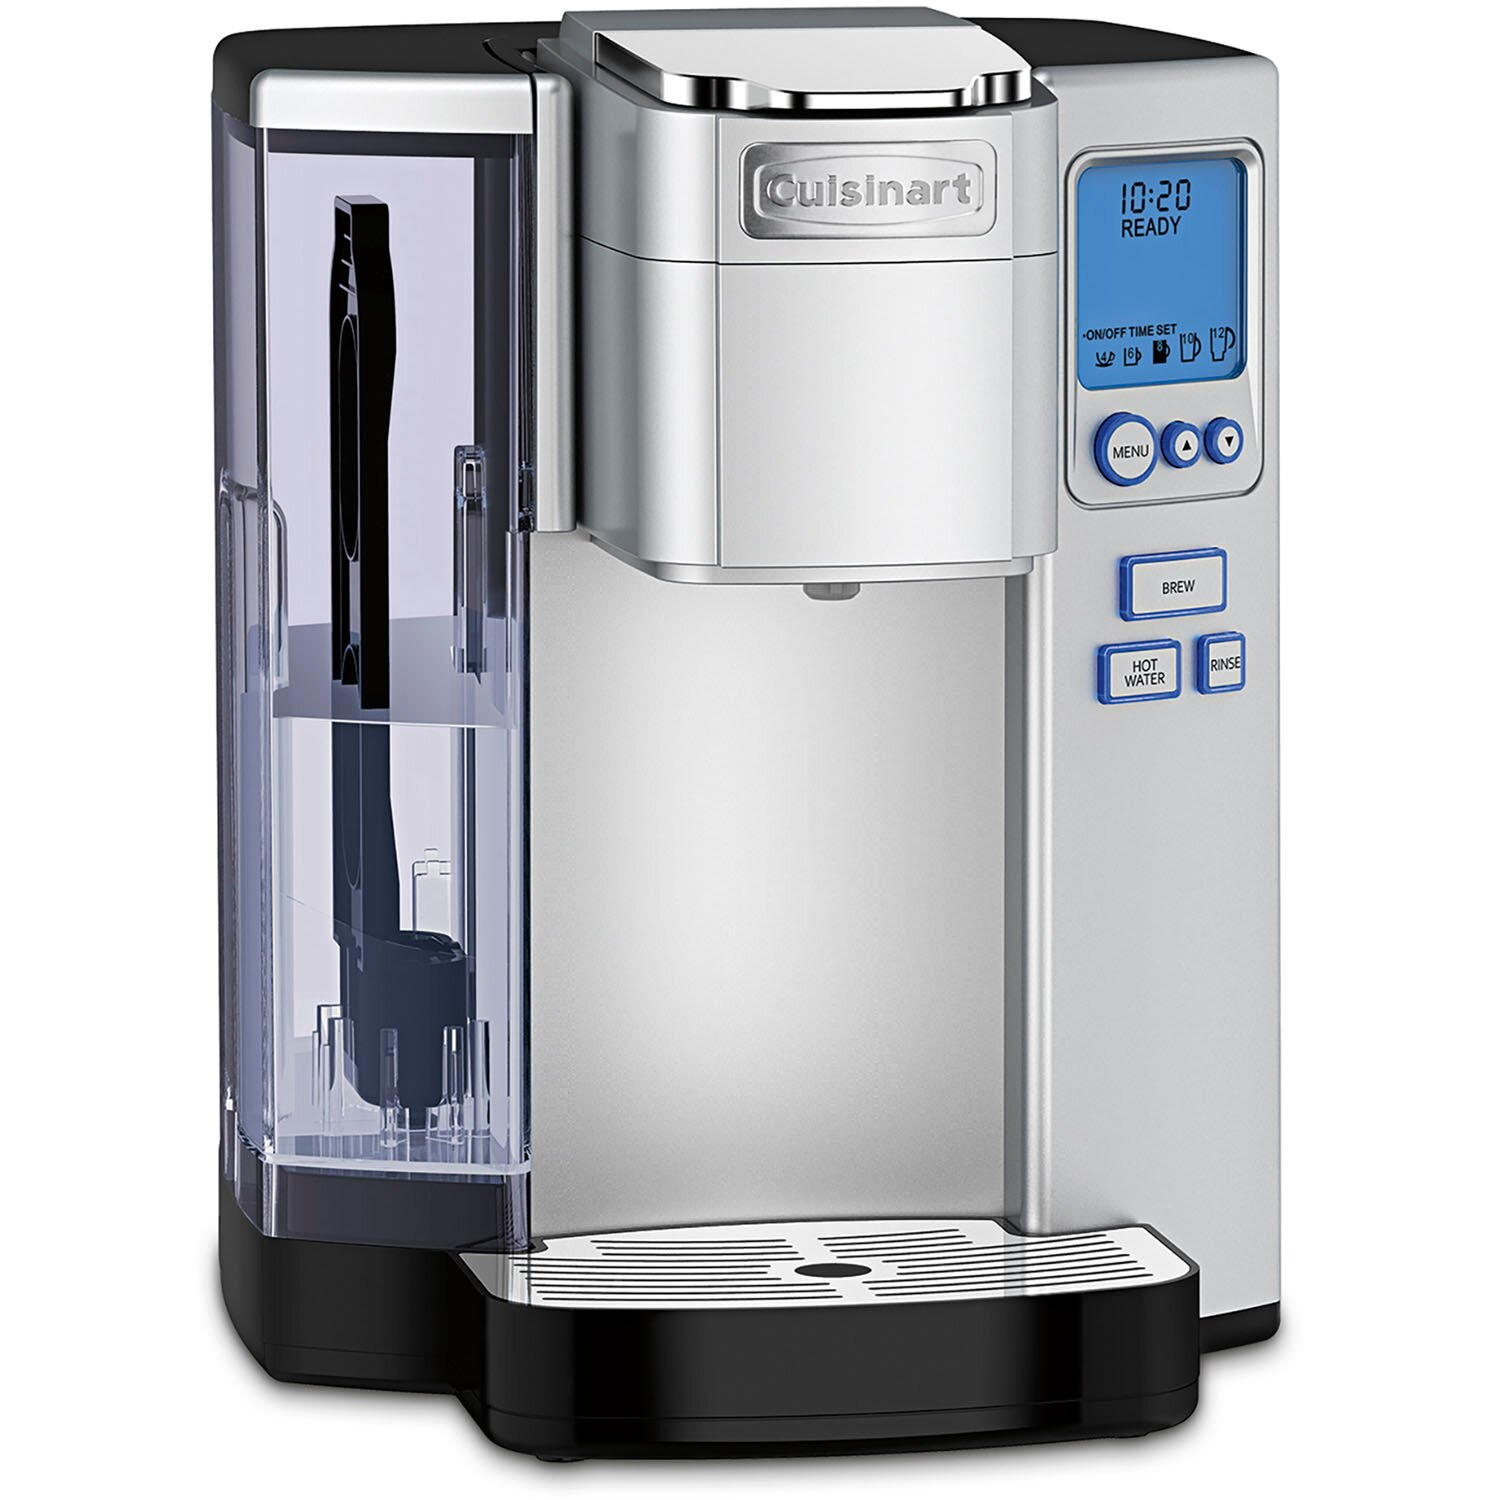 Cuisinart Premium Single Serve Brewer Coffee Maker ...